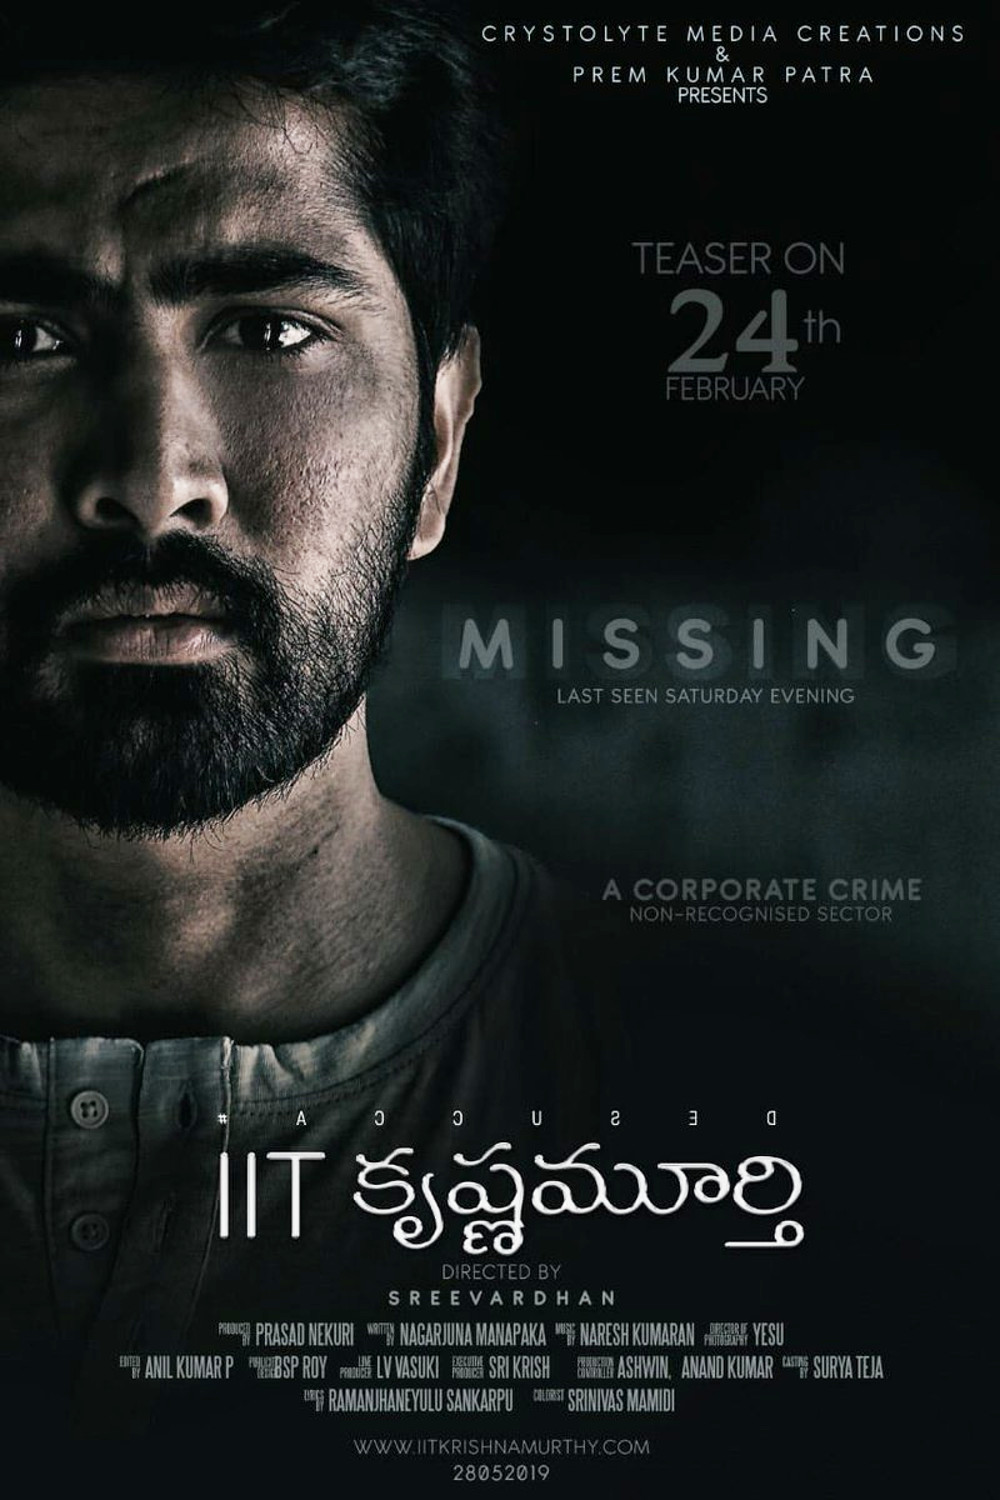 Prudhvi Dandamuri IIT Krishnamurthy Movie First Look Launched, Teaser On Feb 24